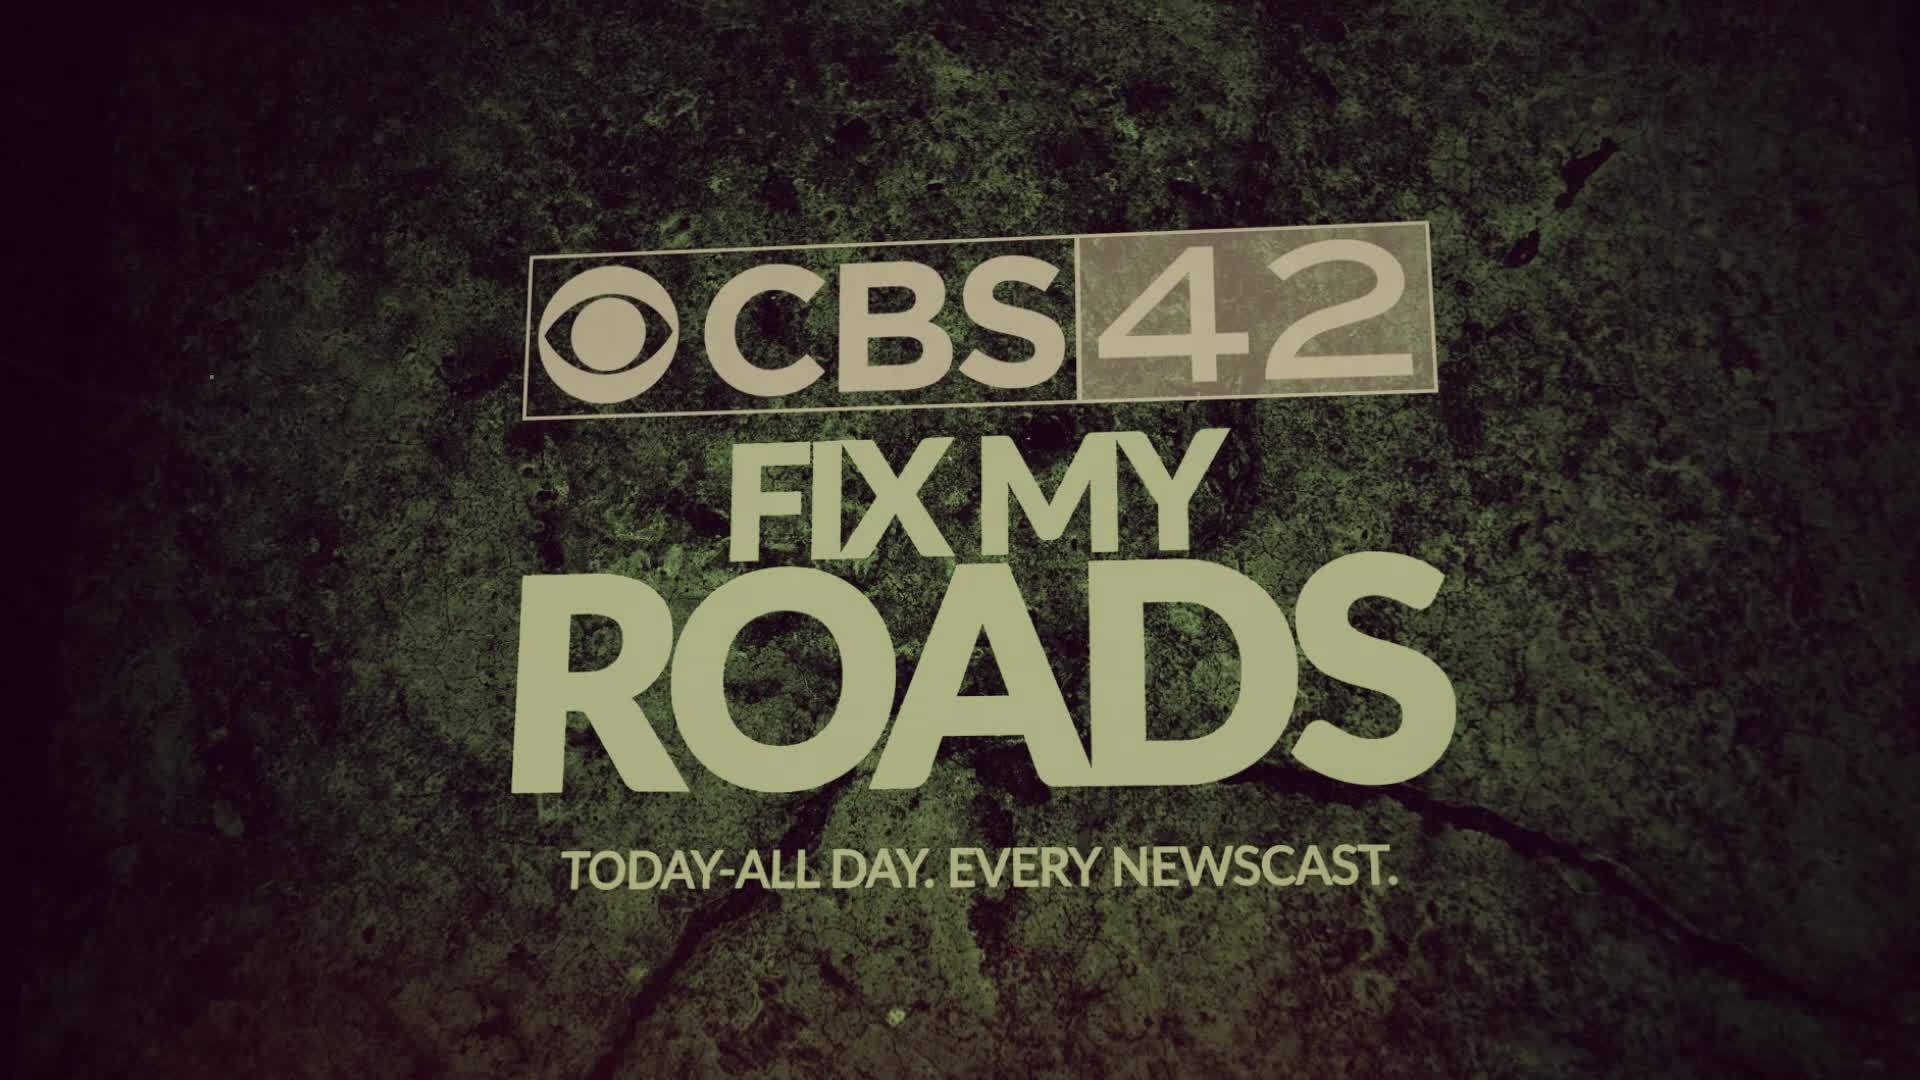 FIX MY ROADS Today. All day. Every newscast